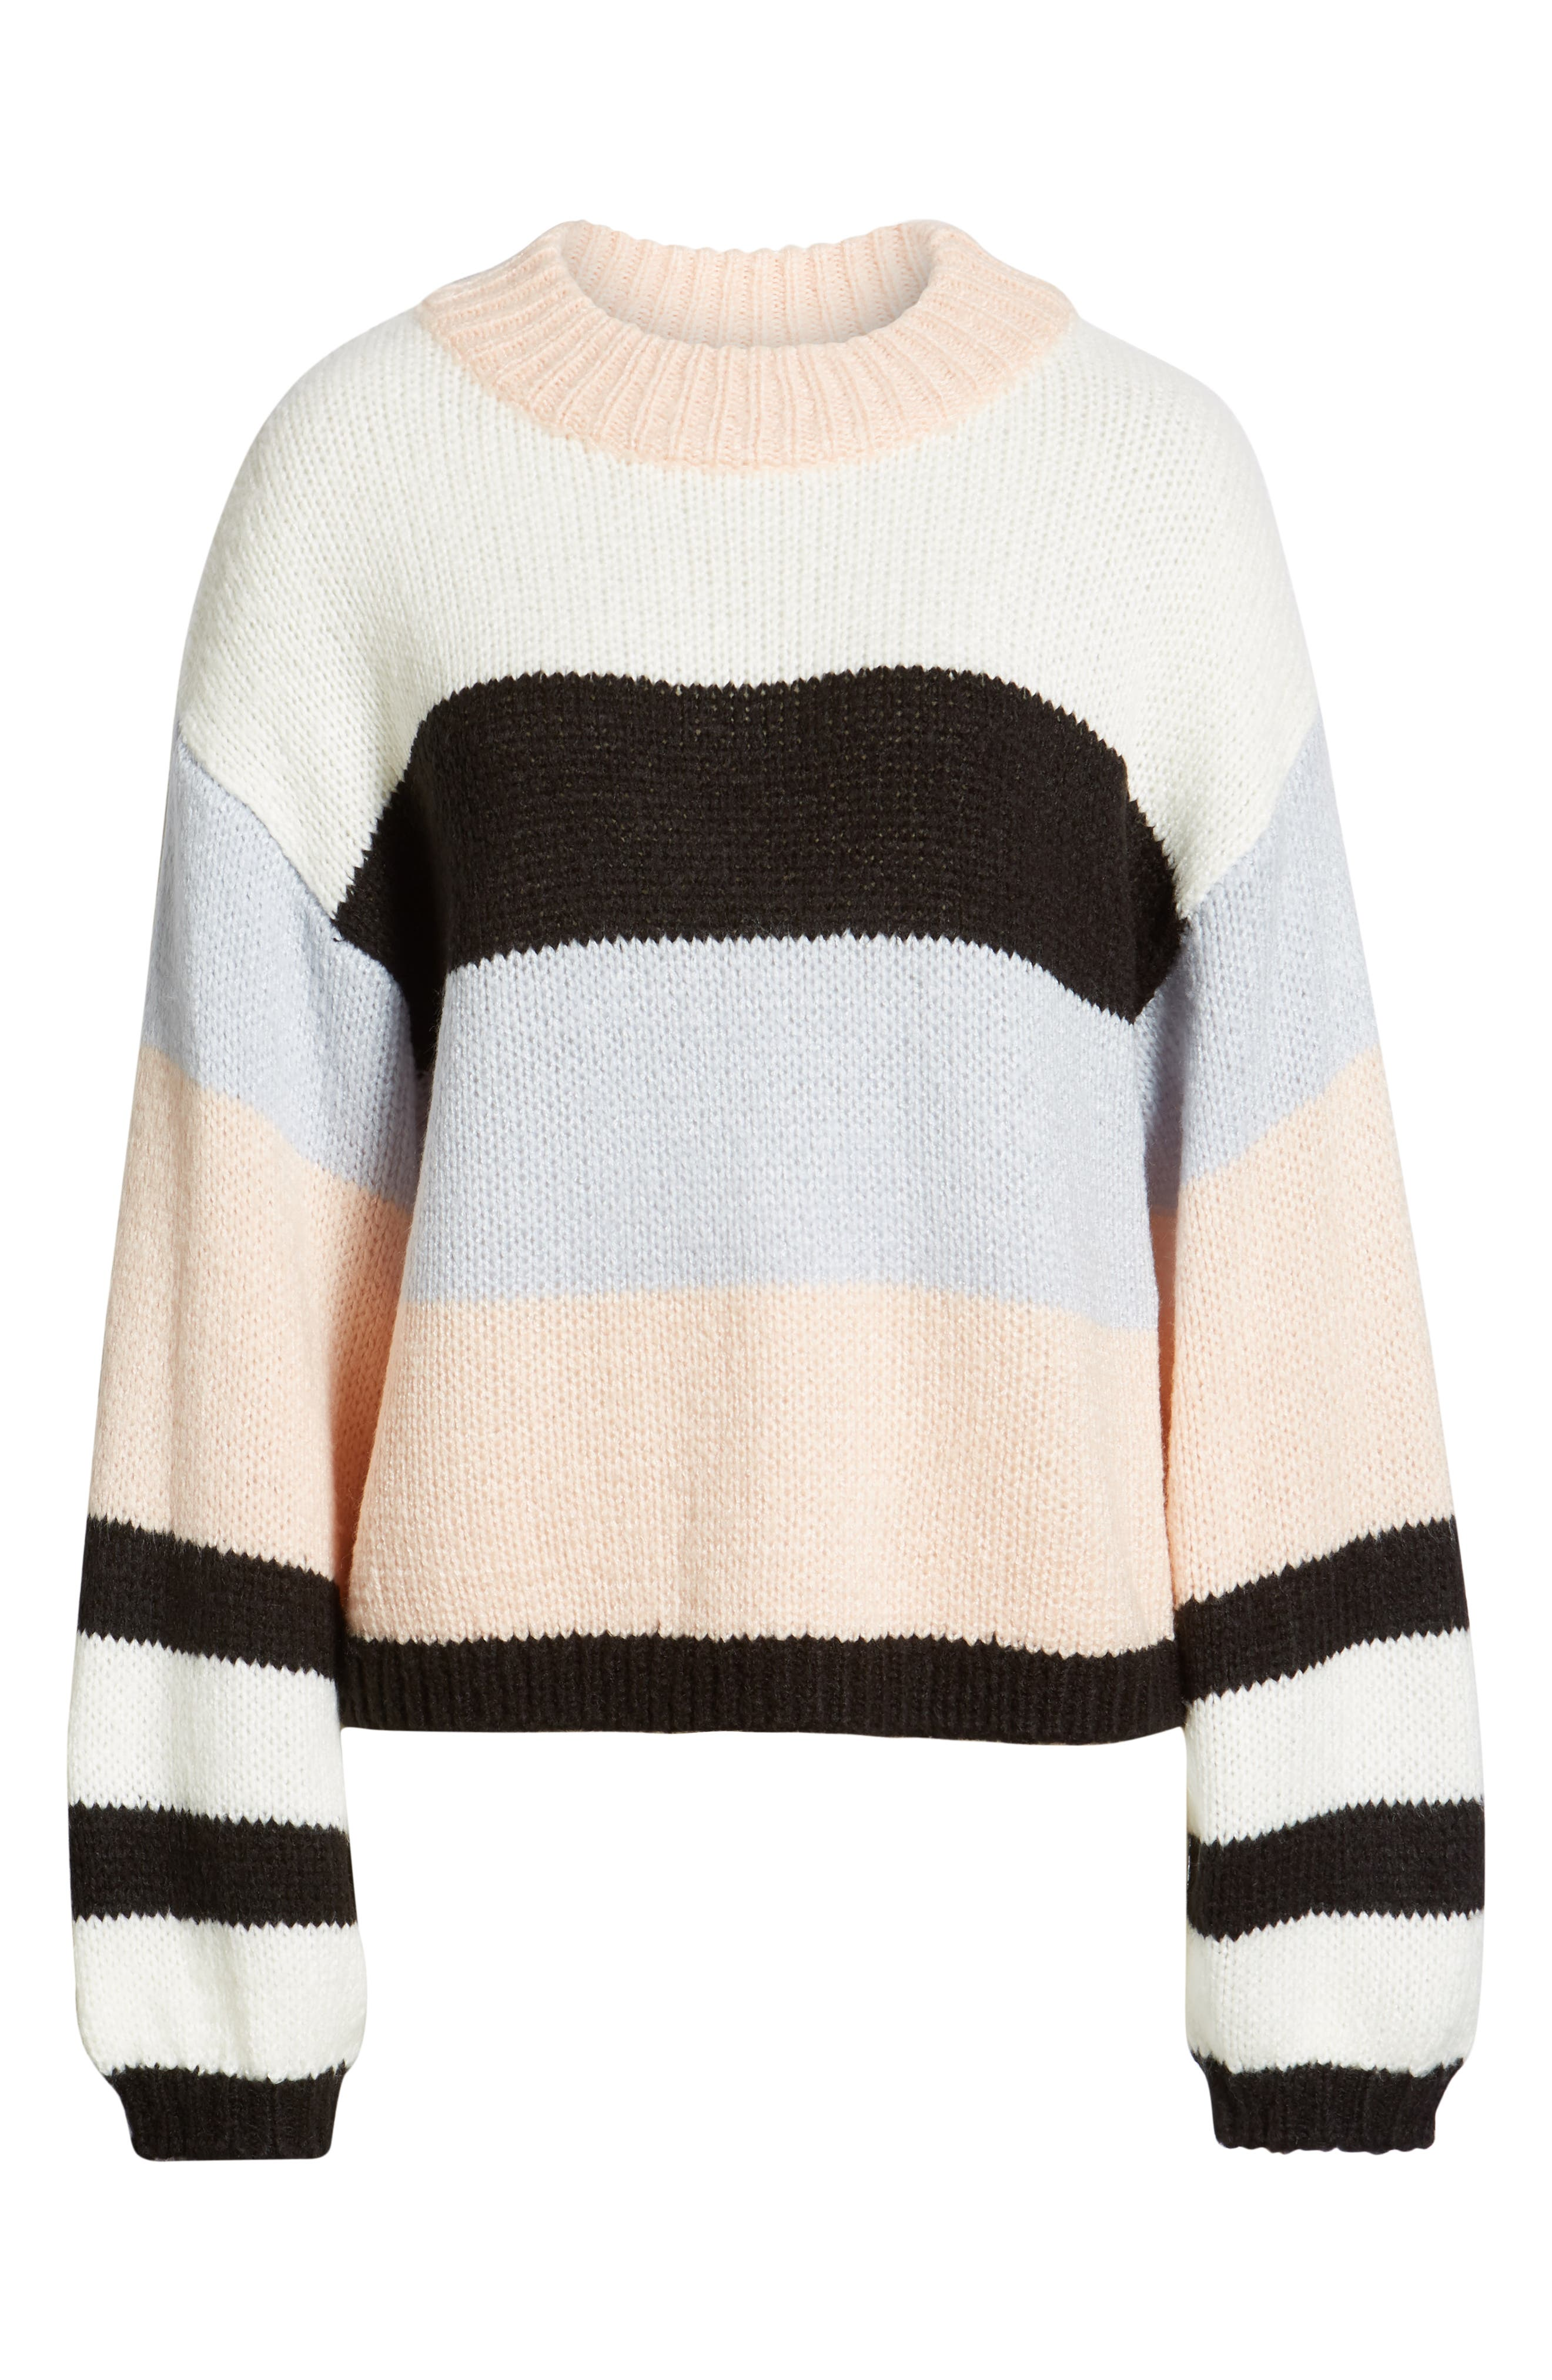 BP., Stripe Sweater, Alternate thumbnail 6, color, 660